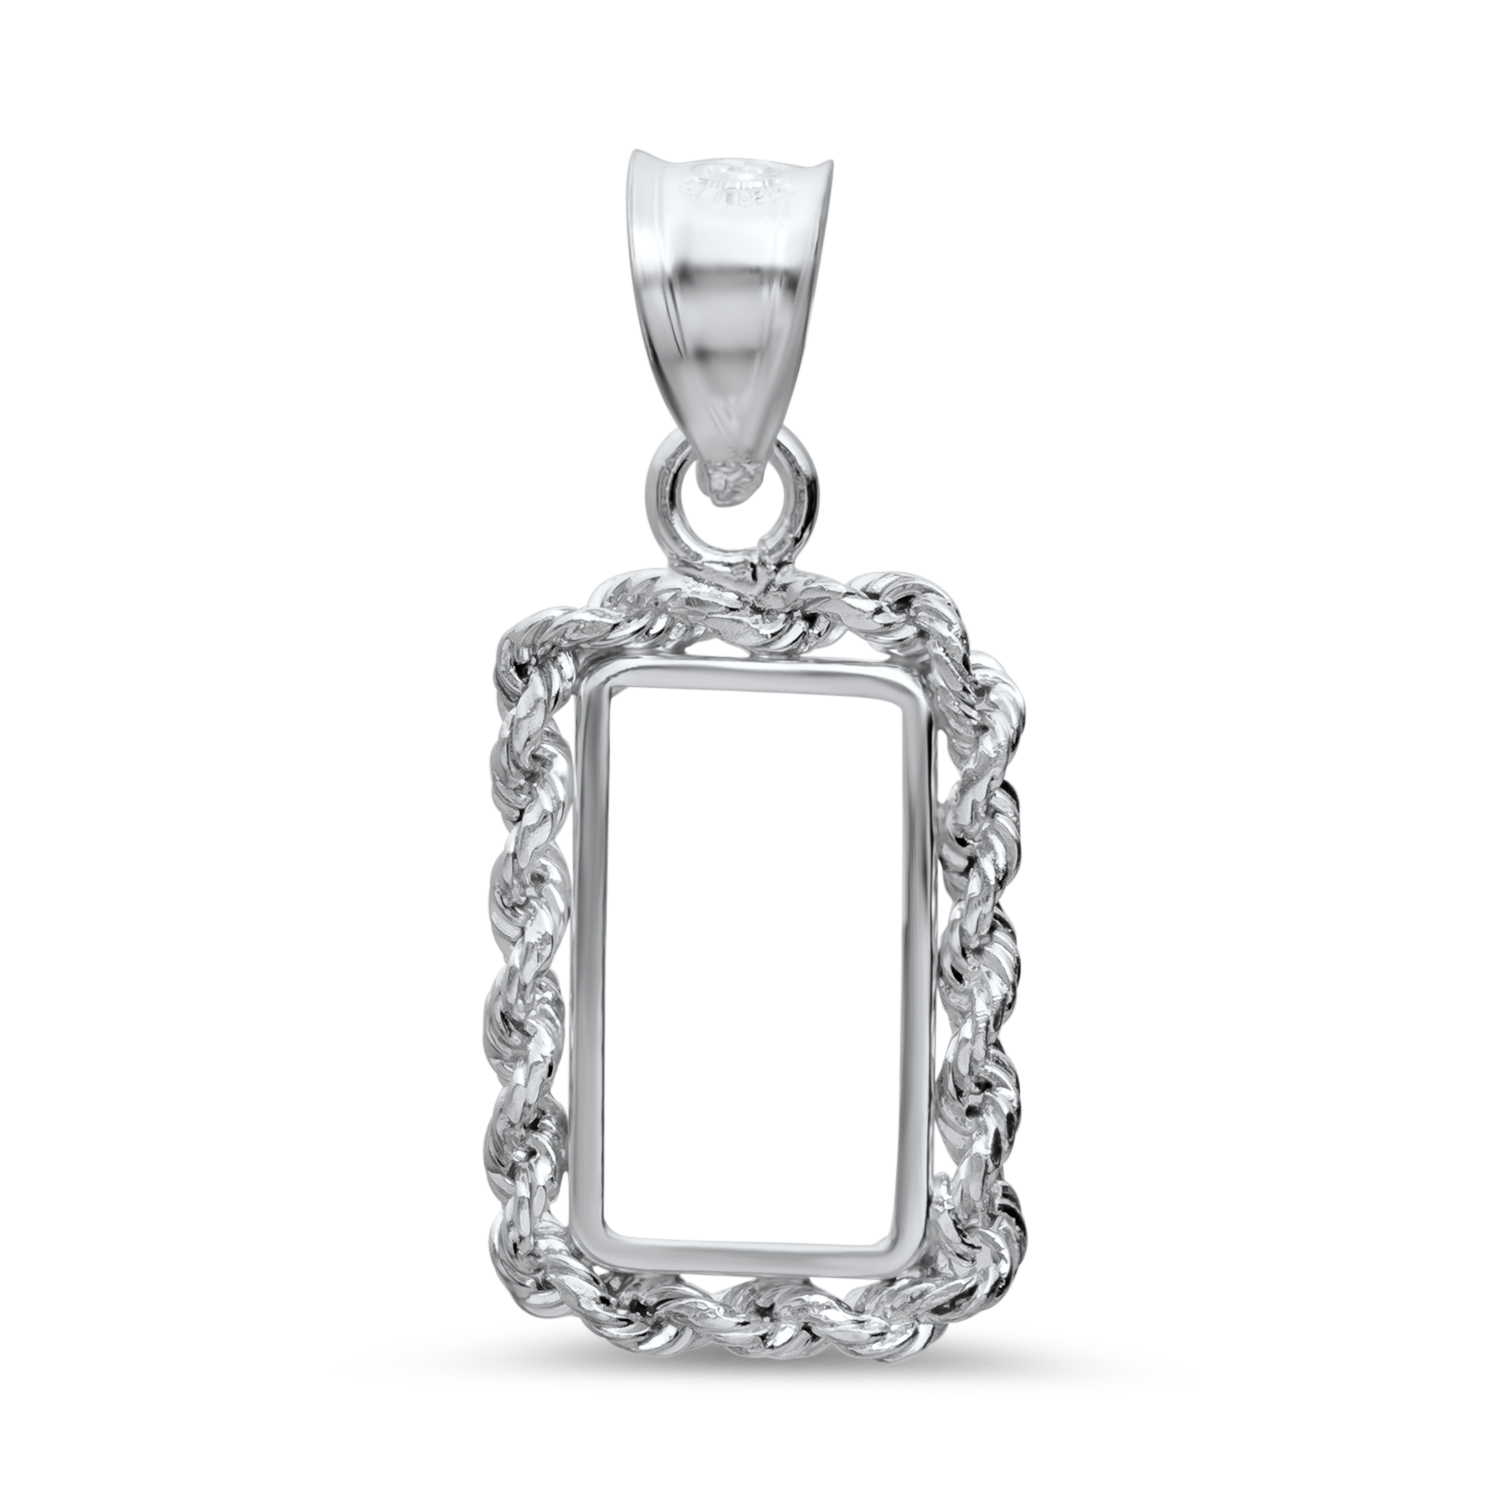 Sterling Silver Bezels (Fits 1 Gram Bars) (Rope Style)